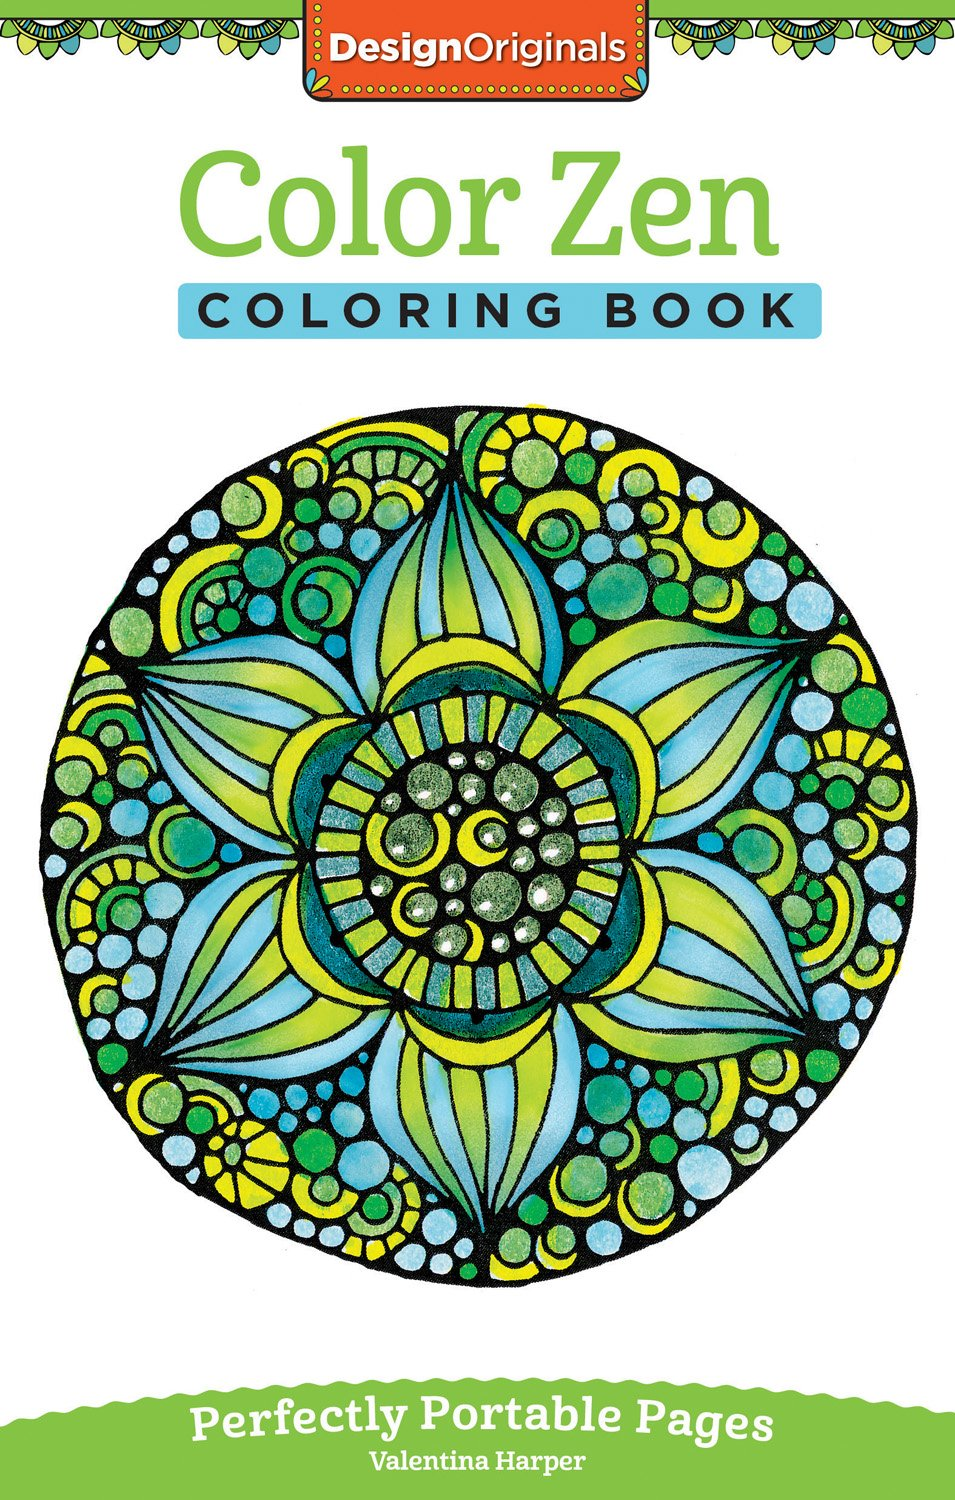 Amazon.com: Color Zen Coloring Book: Perfectly Portable Pages (On ...